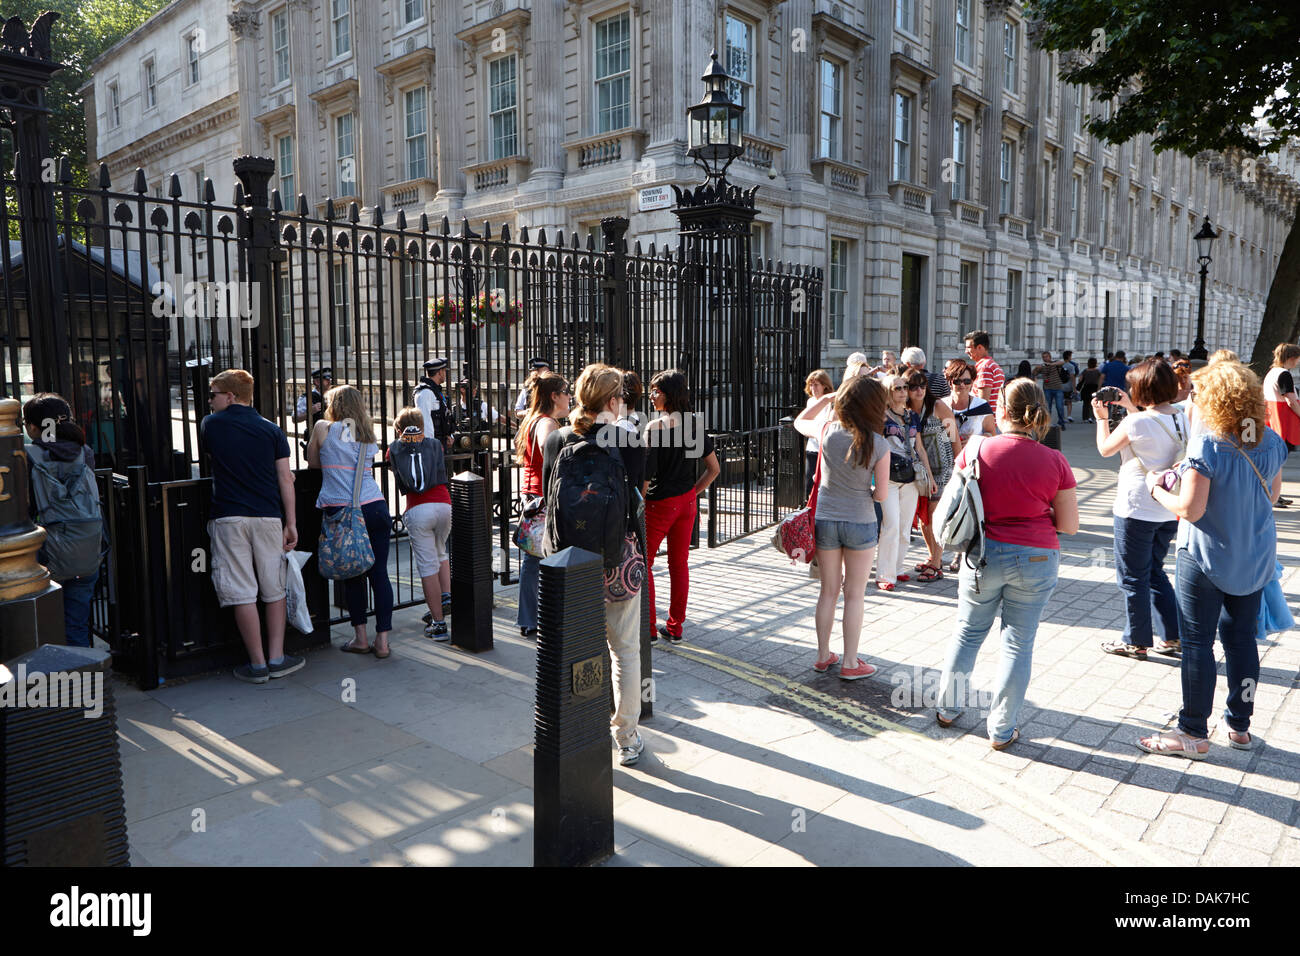 tourists outside the security gates of downing street london, england uk Stock Photo